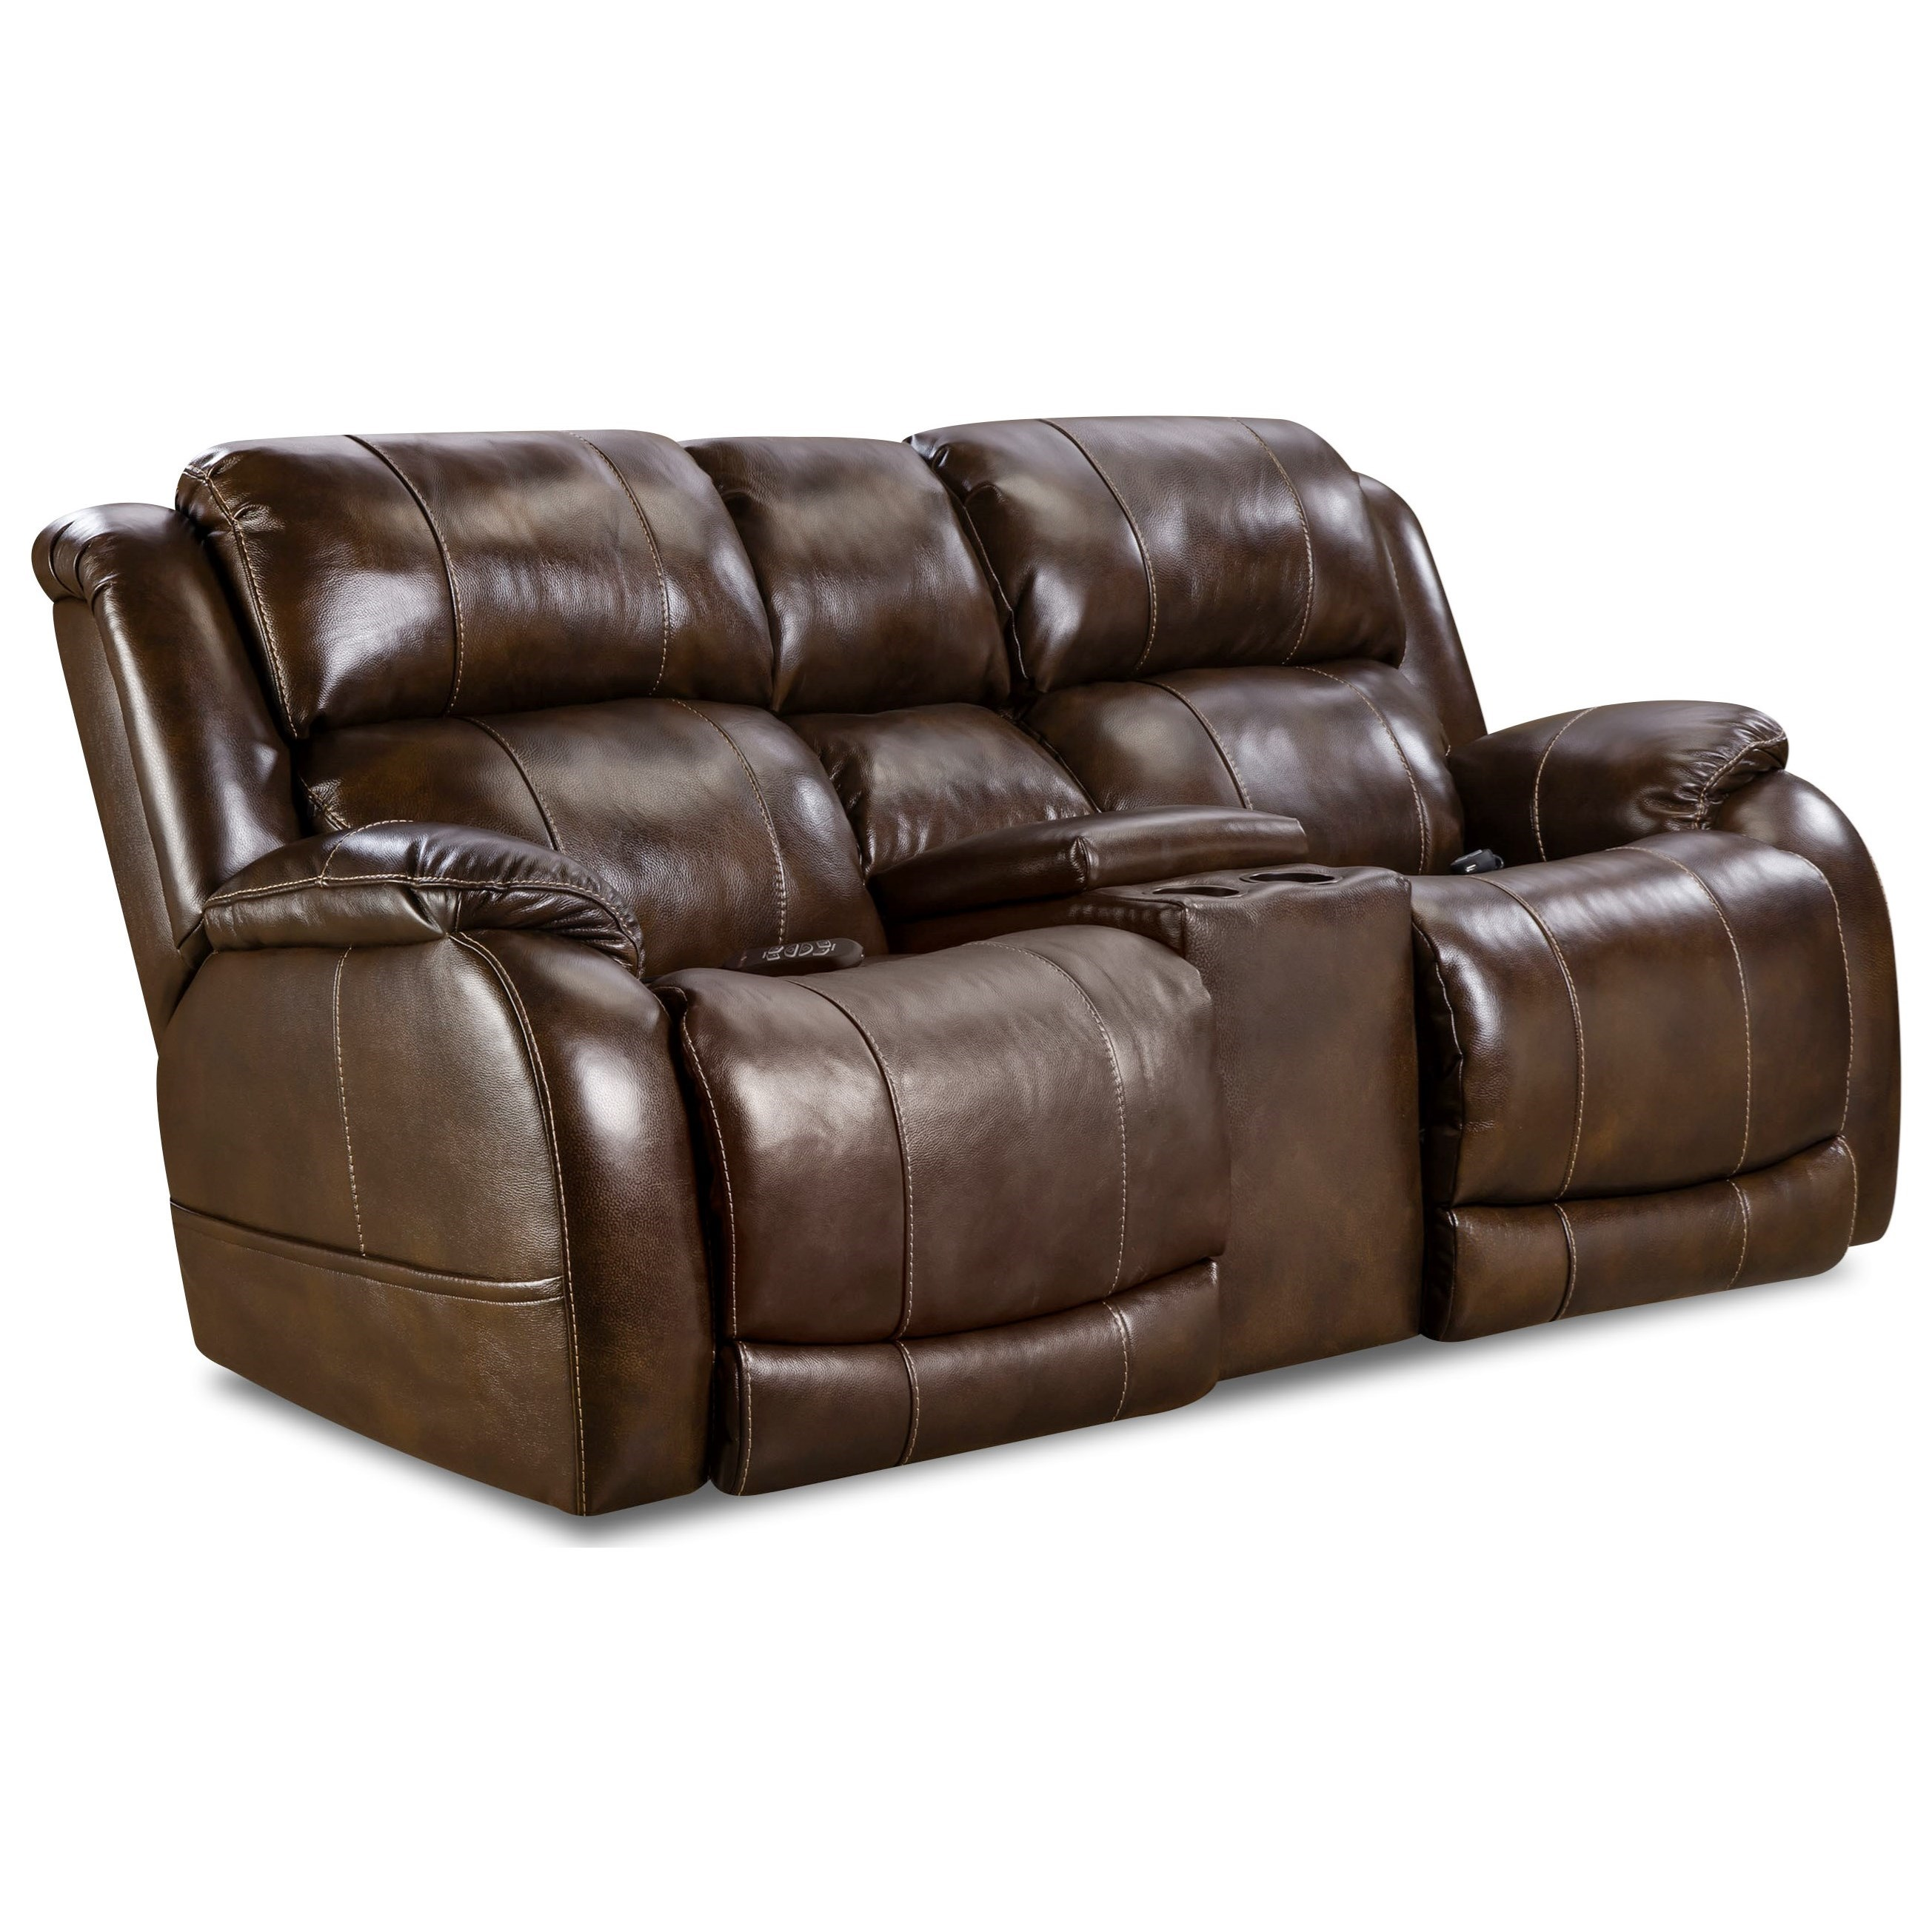 170 Collection Power Reclining Console Loveseat by HomeStretch at Suburban Furniture